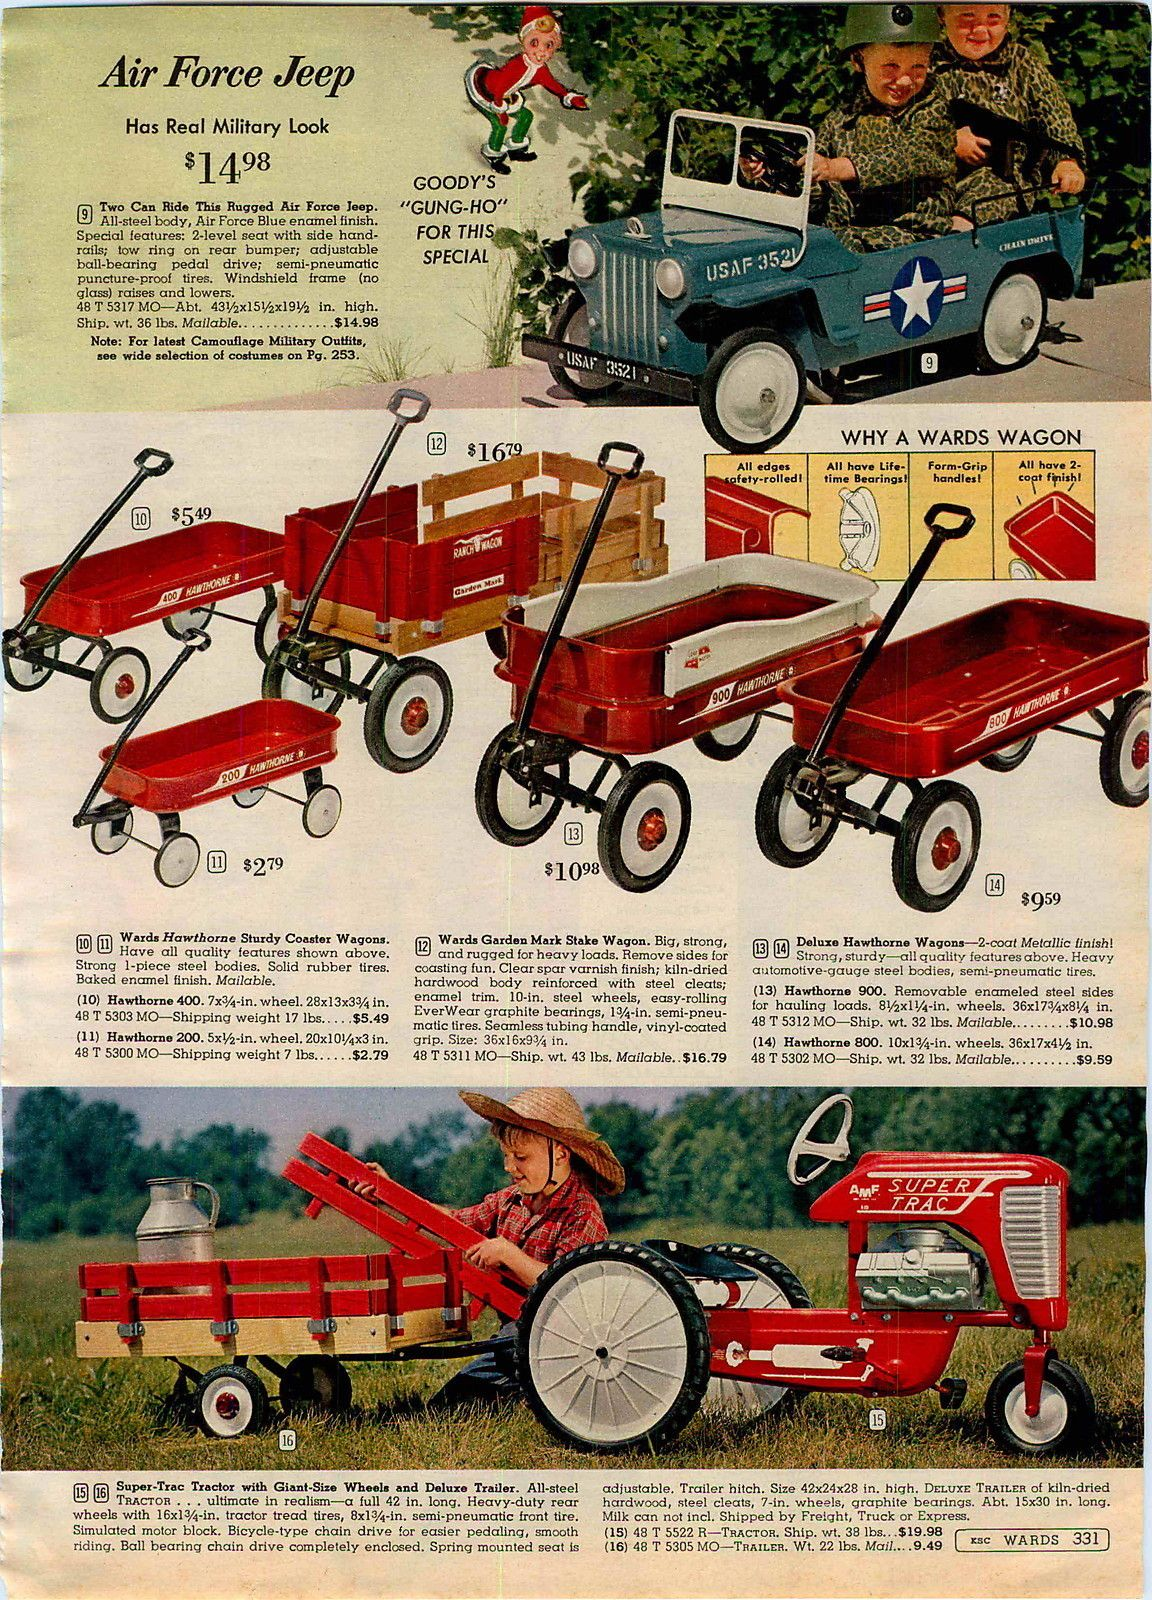 1963 AD AMF Super Trac TOY Pedal CAR Tractor Trailer AIR